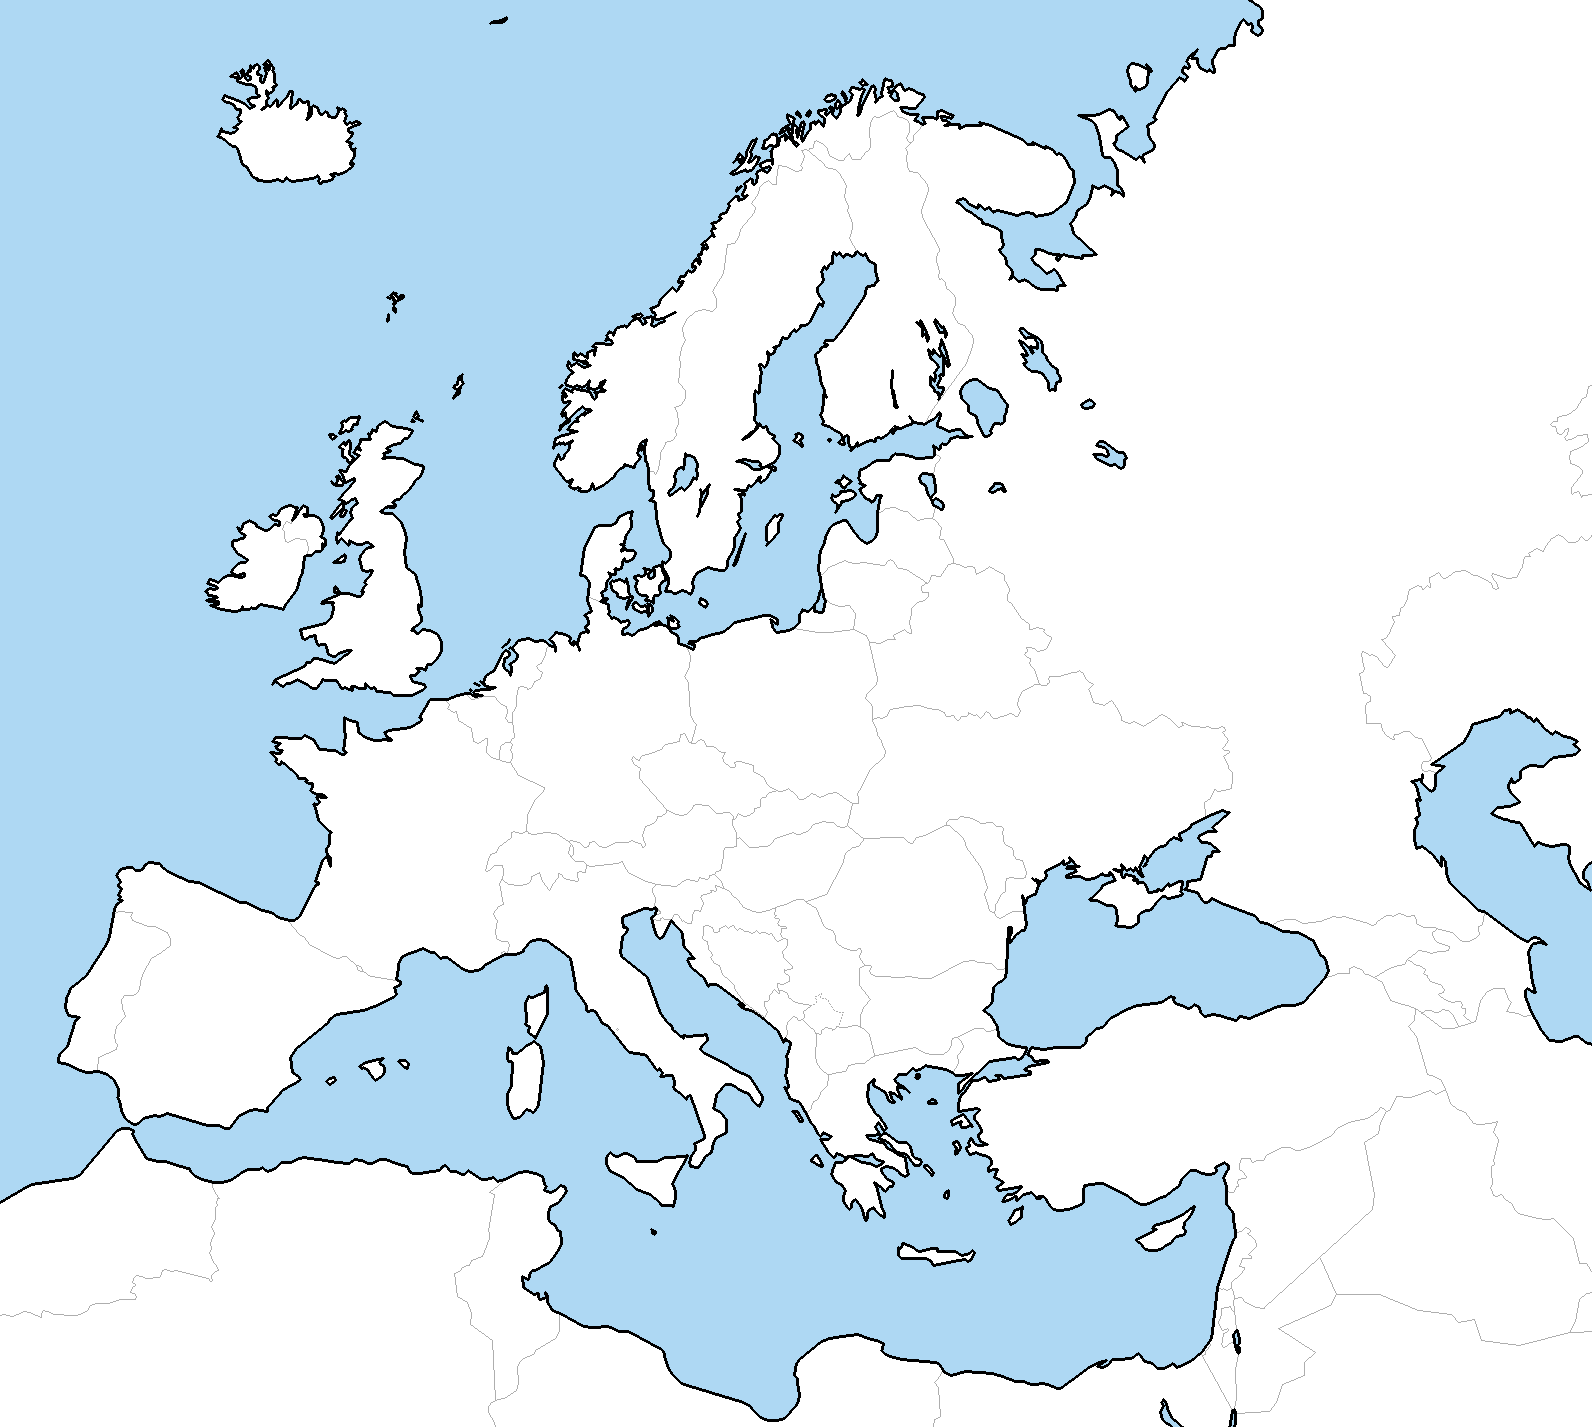 Blank Europe Map By Neethis On DeviantArt - Europe blank map